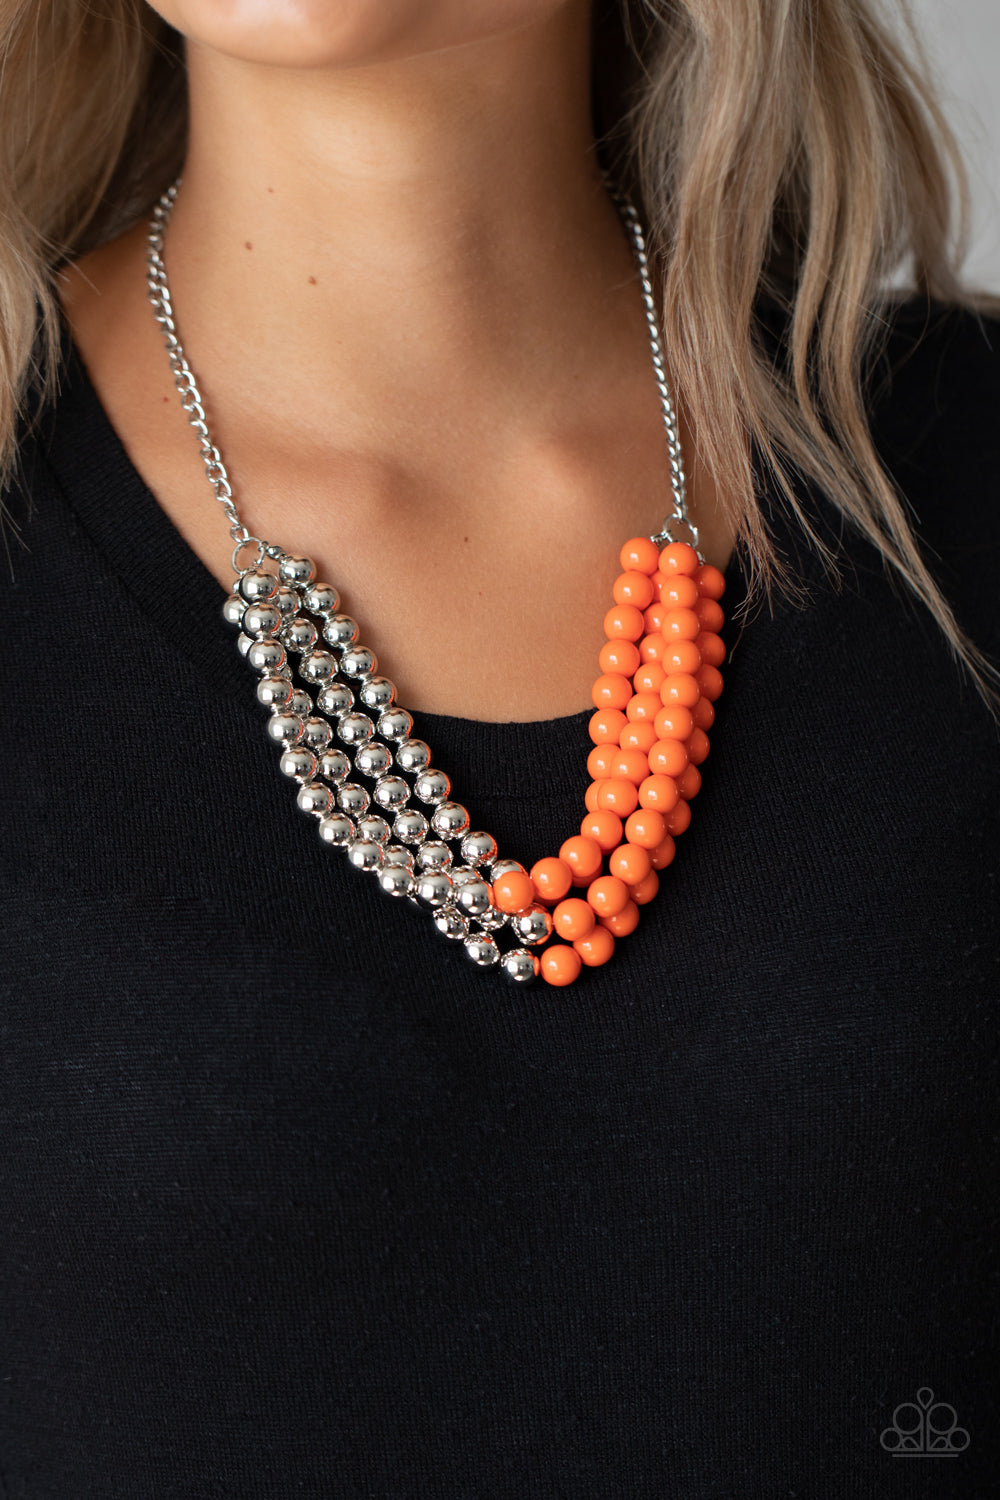 Paparazzi Jewelry & Accessories - Layer After Layer - Orange Necklace. Bling By Titia Boutique